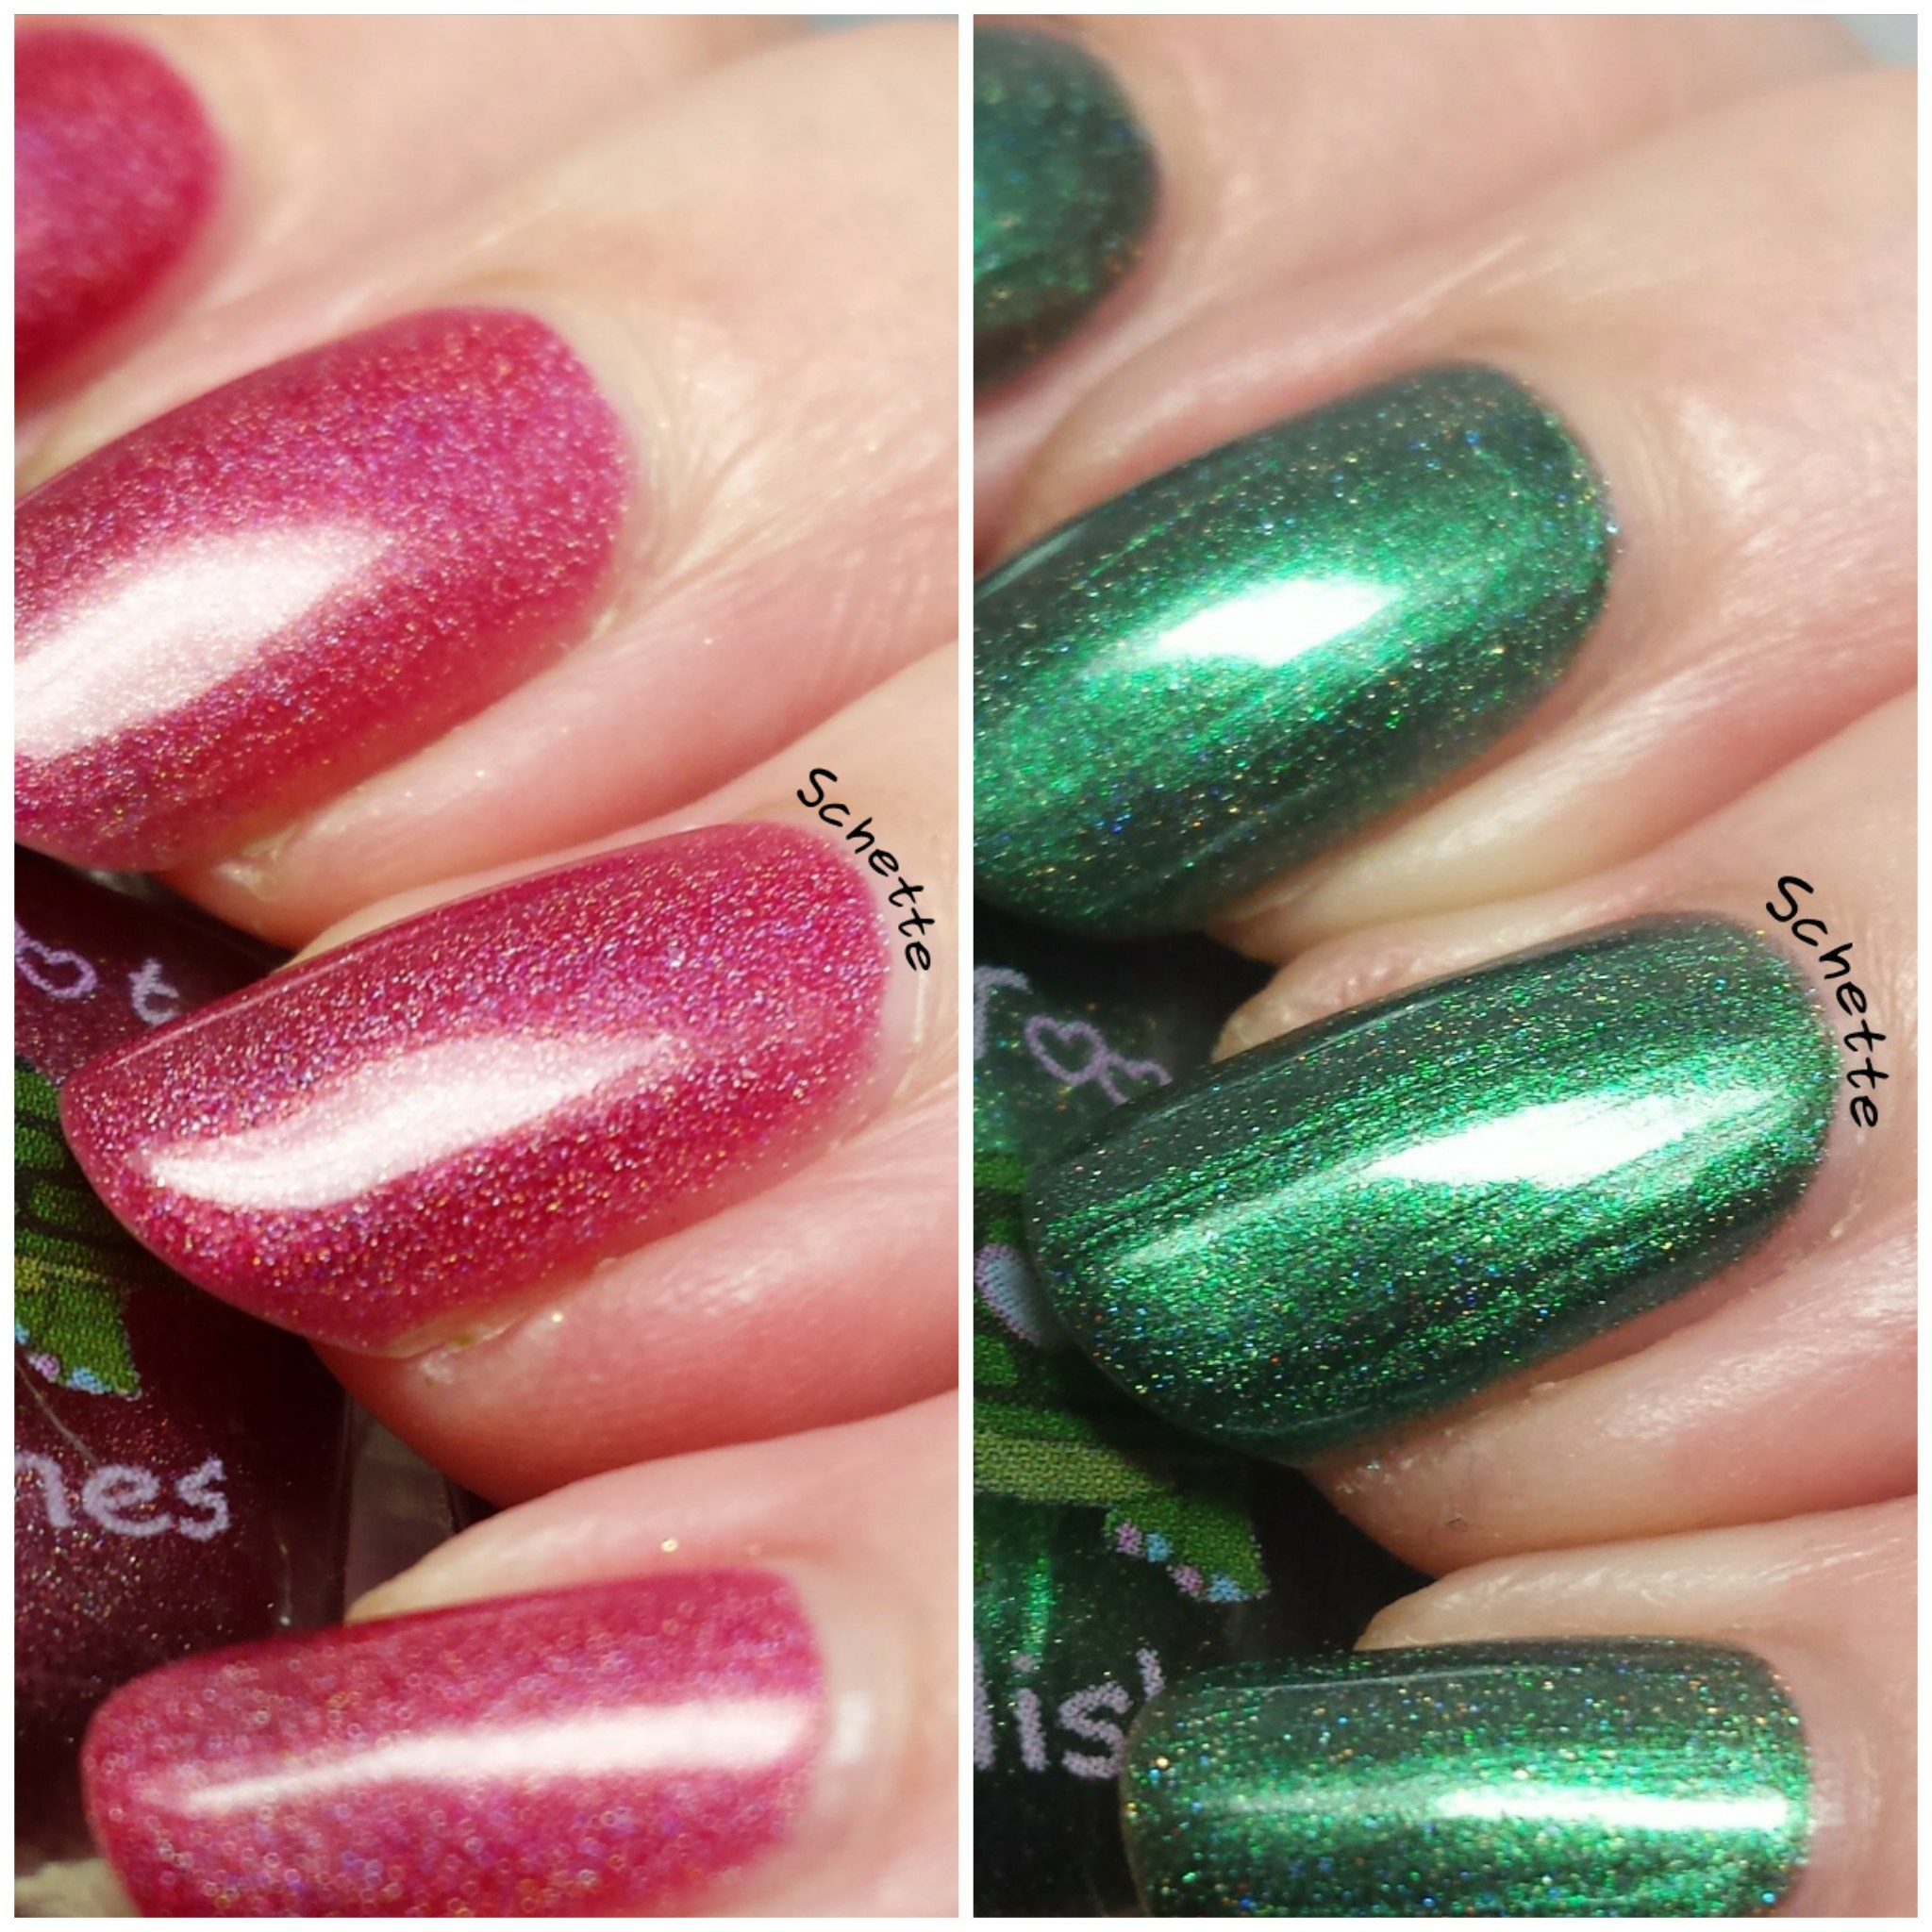 Turtle Tootsie Polish : Lot Lizard, Hemorrhage